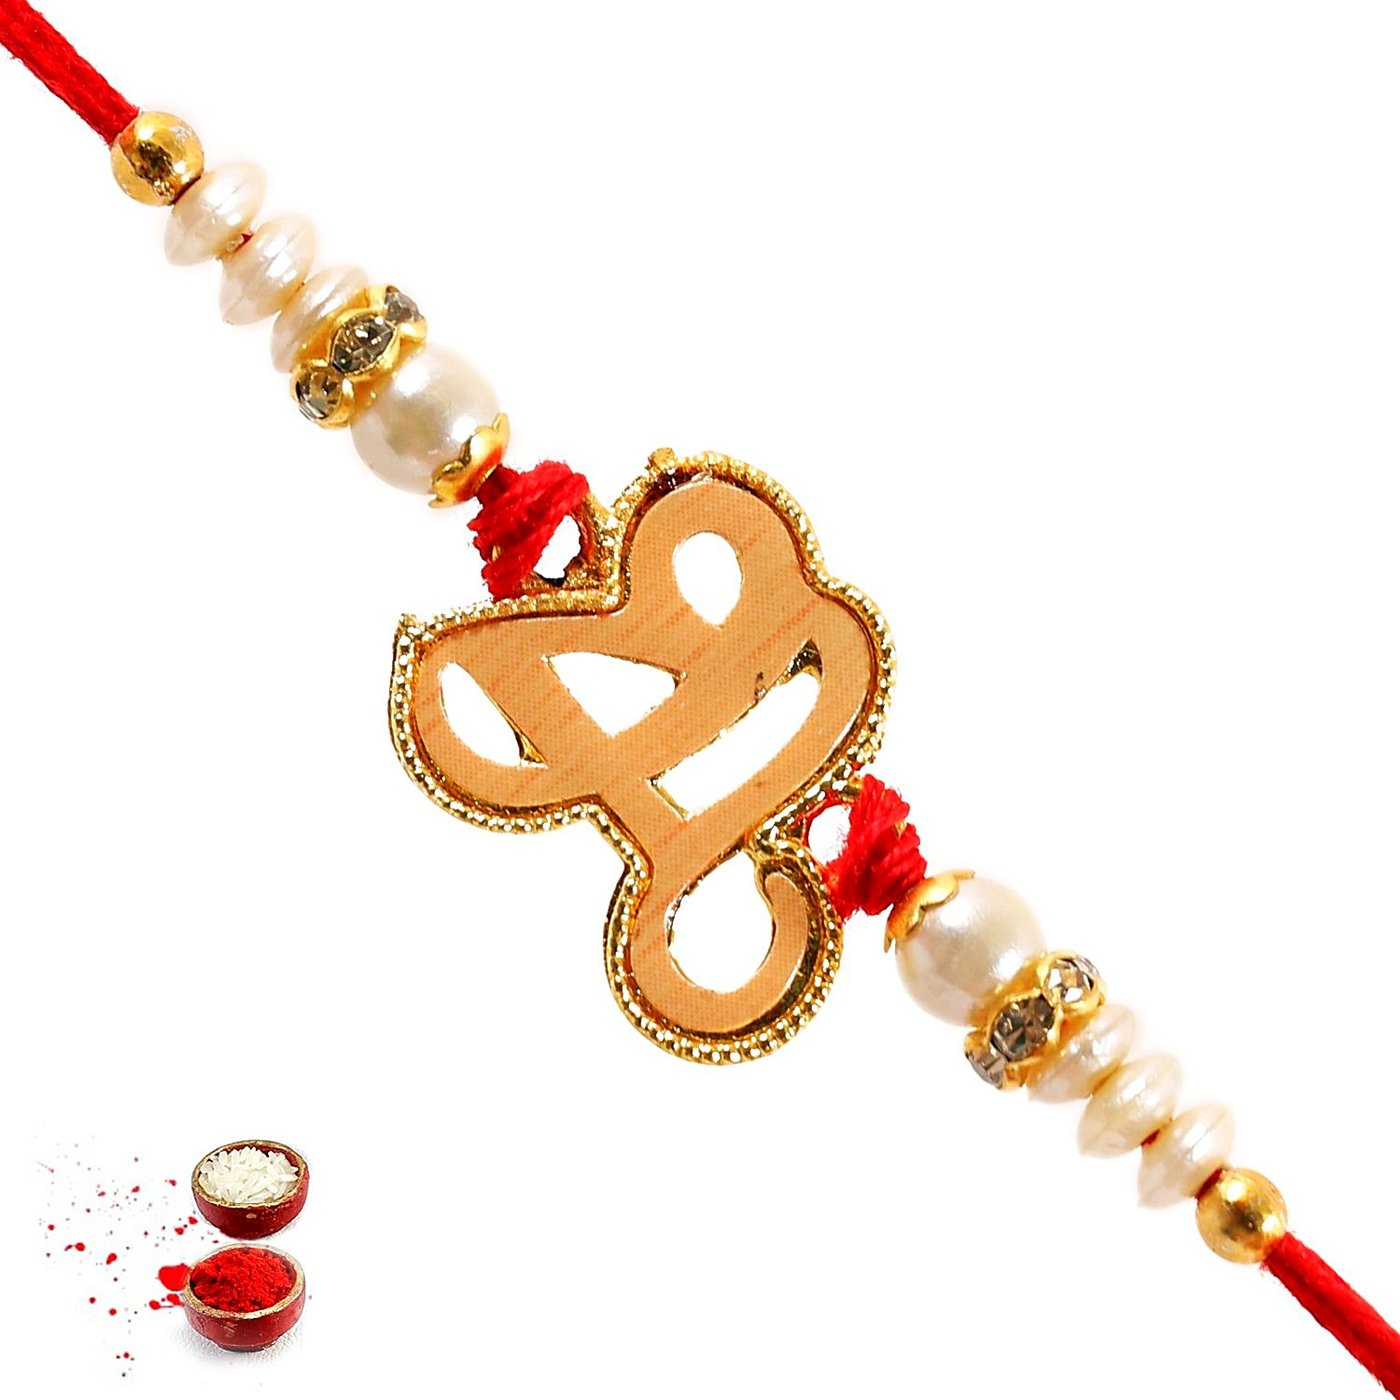 The Medley of Rakhi